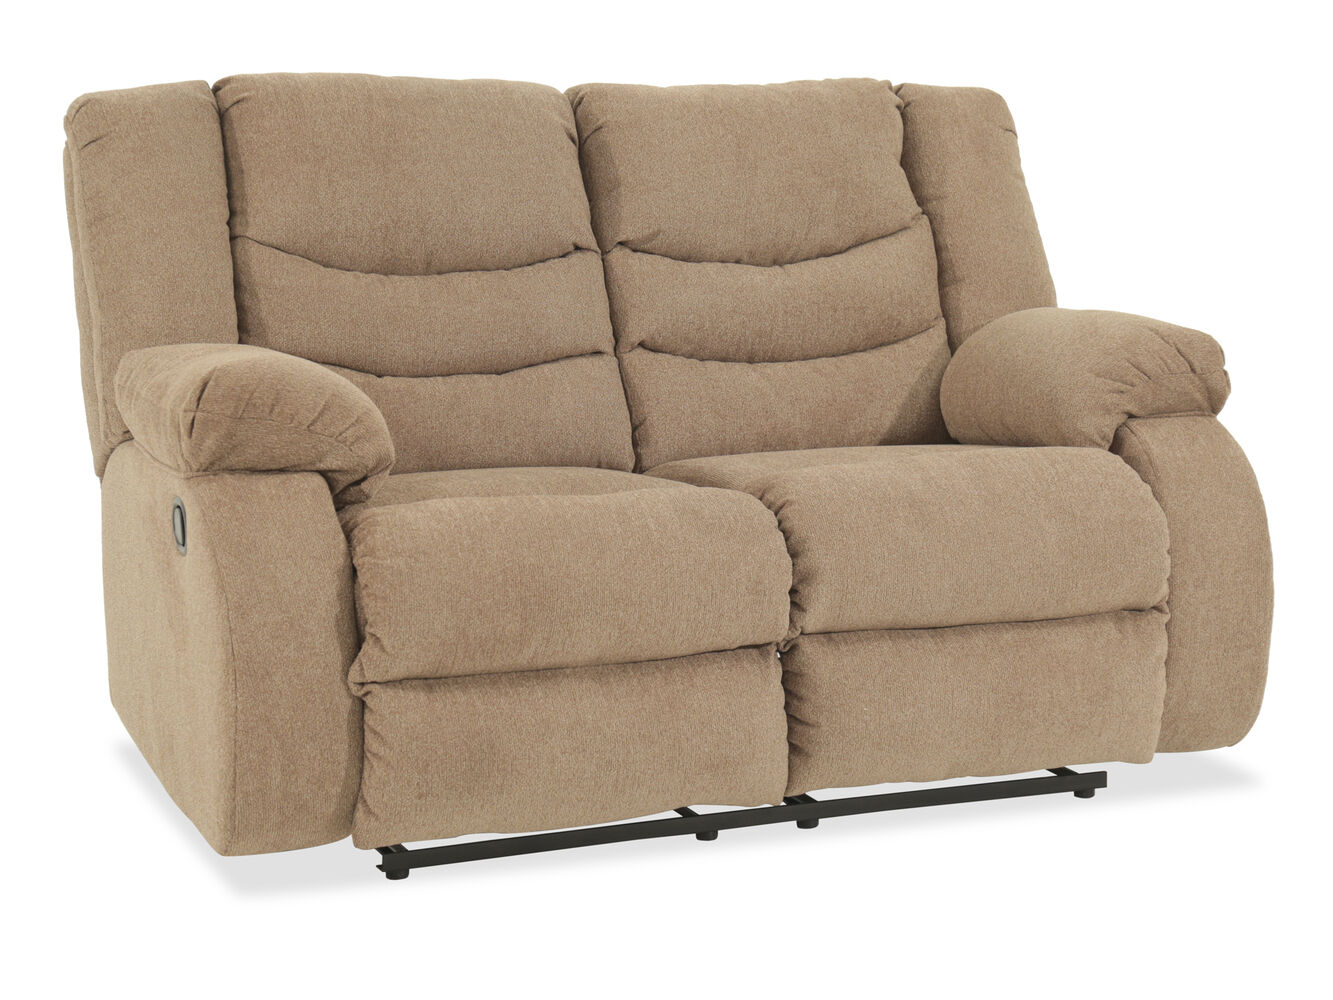 Reclining Contemporary 63 Loveseat In Beige Mathis Brothers Furniture